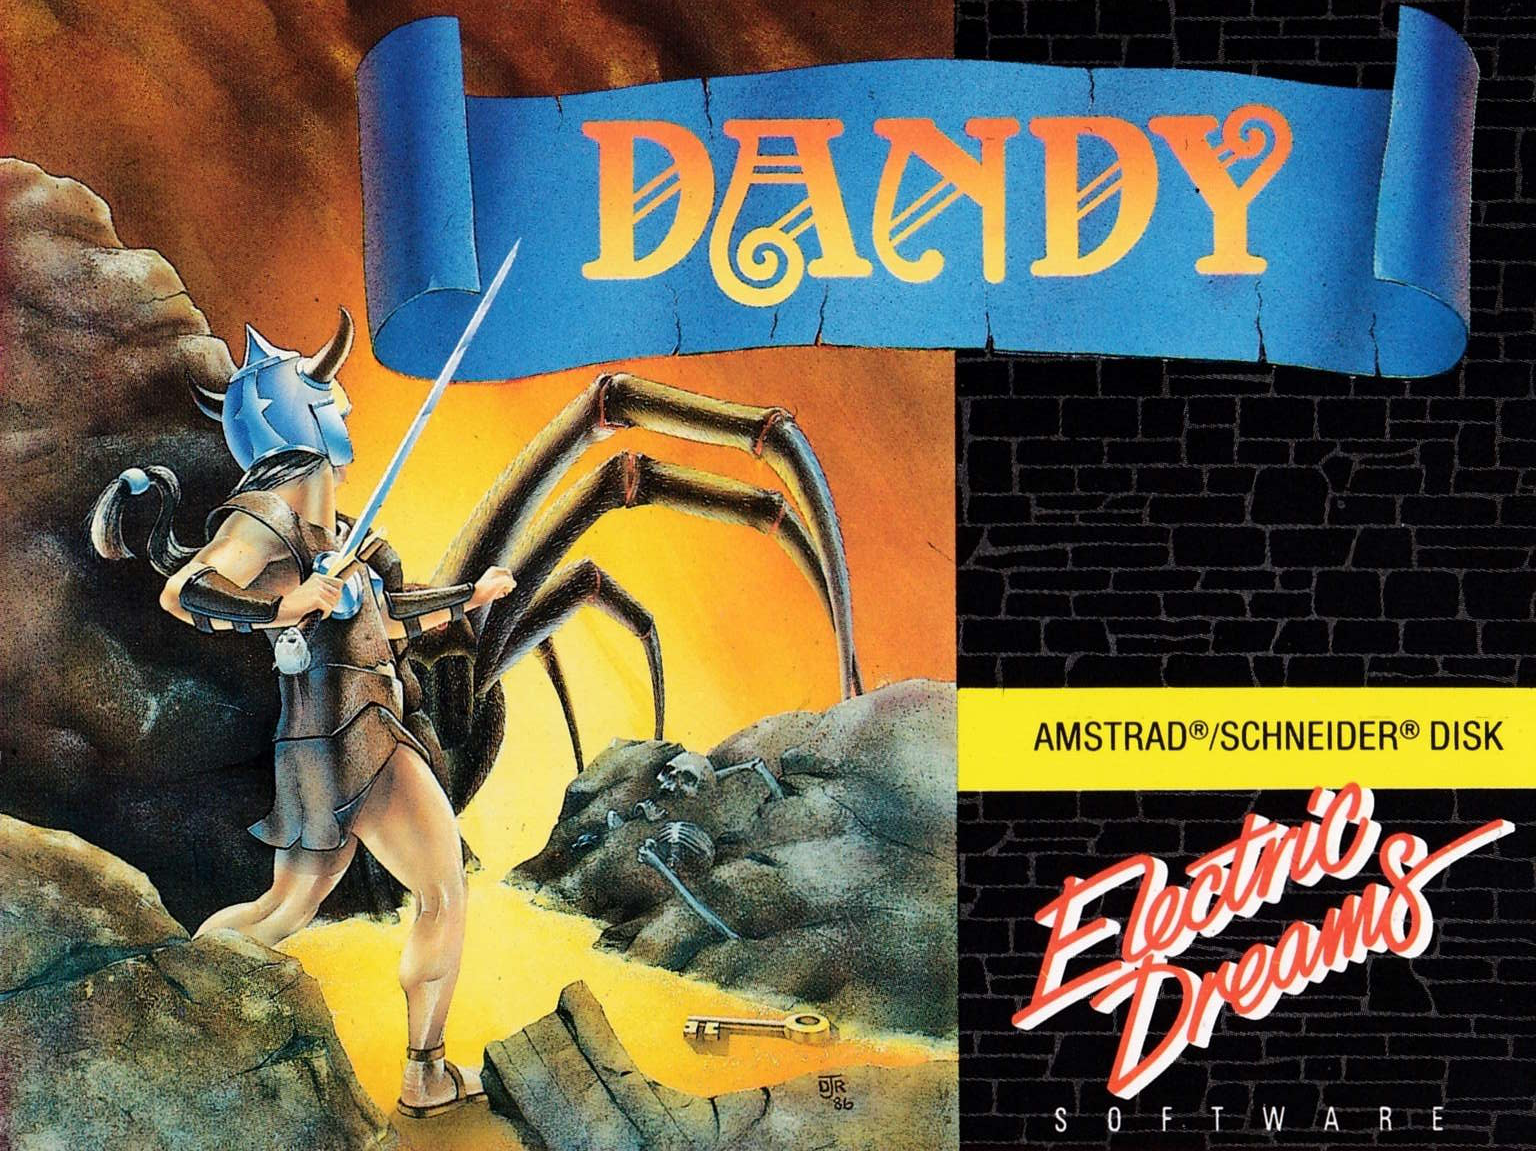 cover of the Amstrad CPC game Dandy  by GameBase CPC